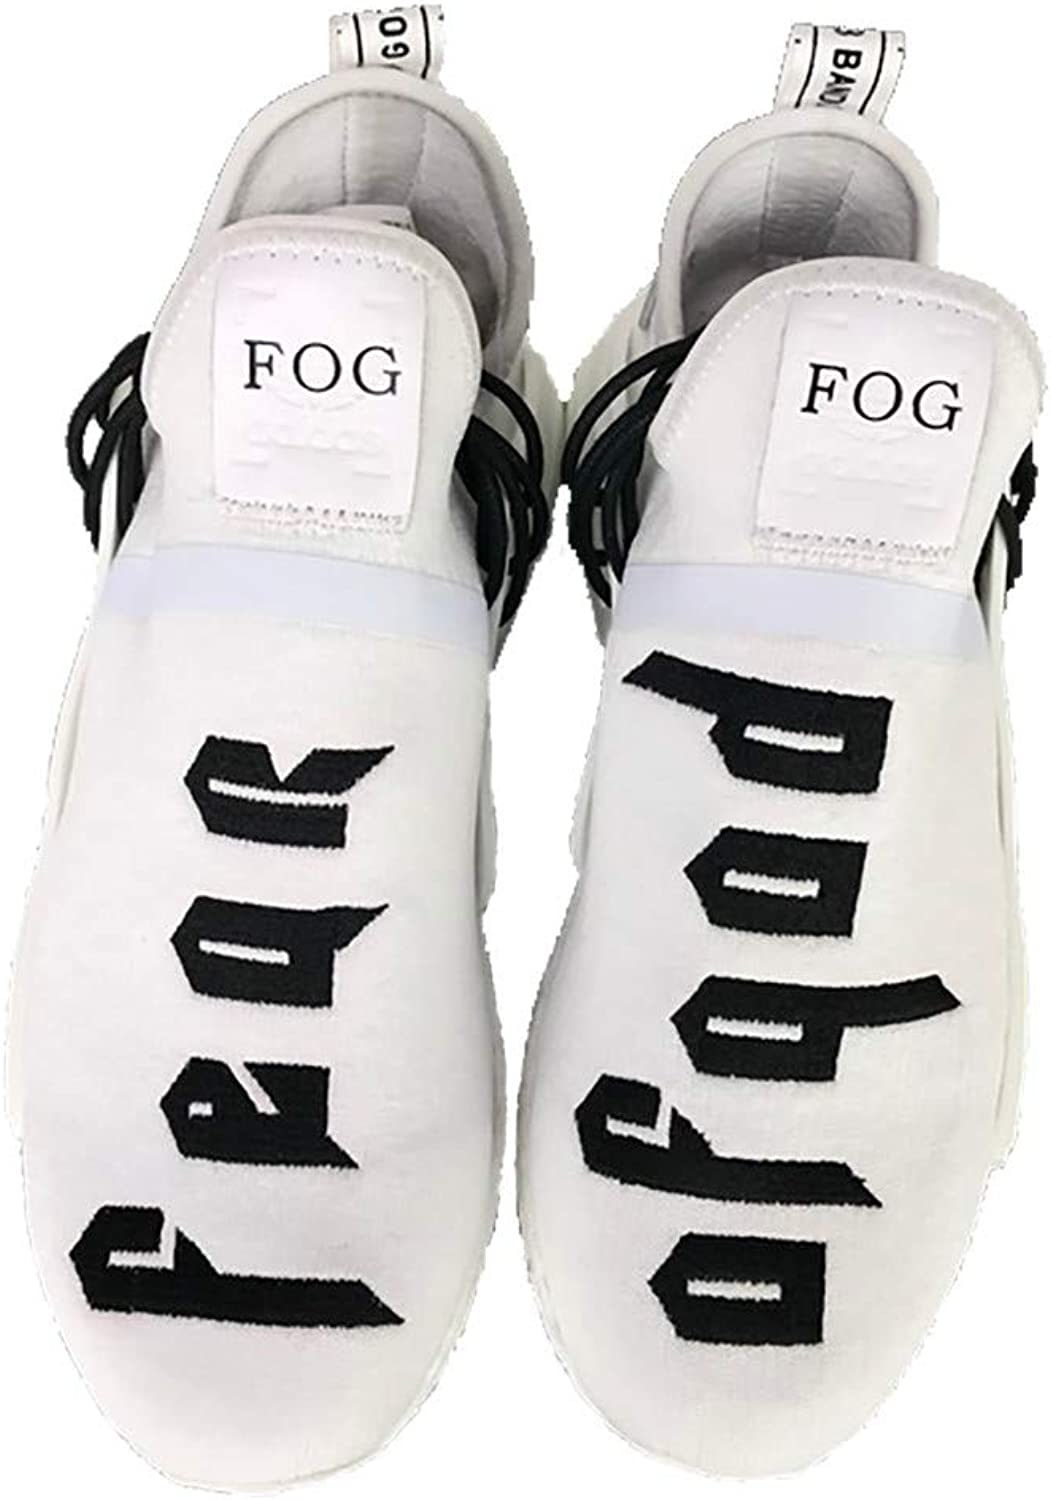 Human Race Sneaker Real Boost Casual Breathable Lightweight Mesh shoes Fear of God-White Women US 7.5